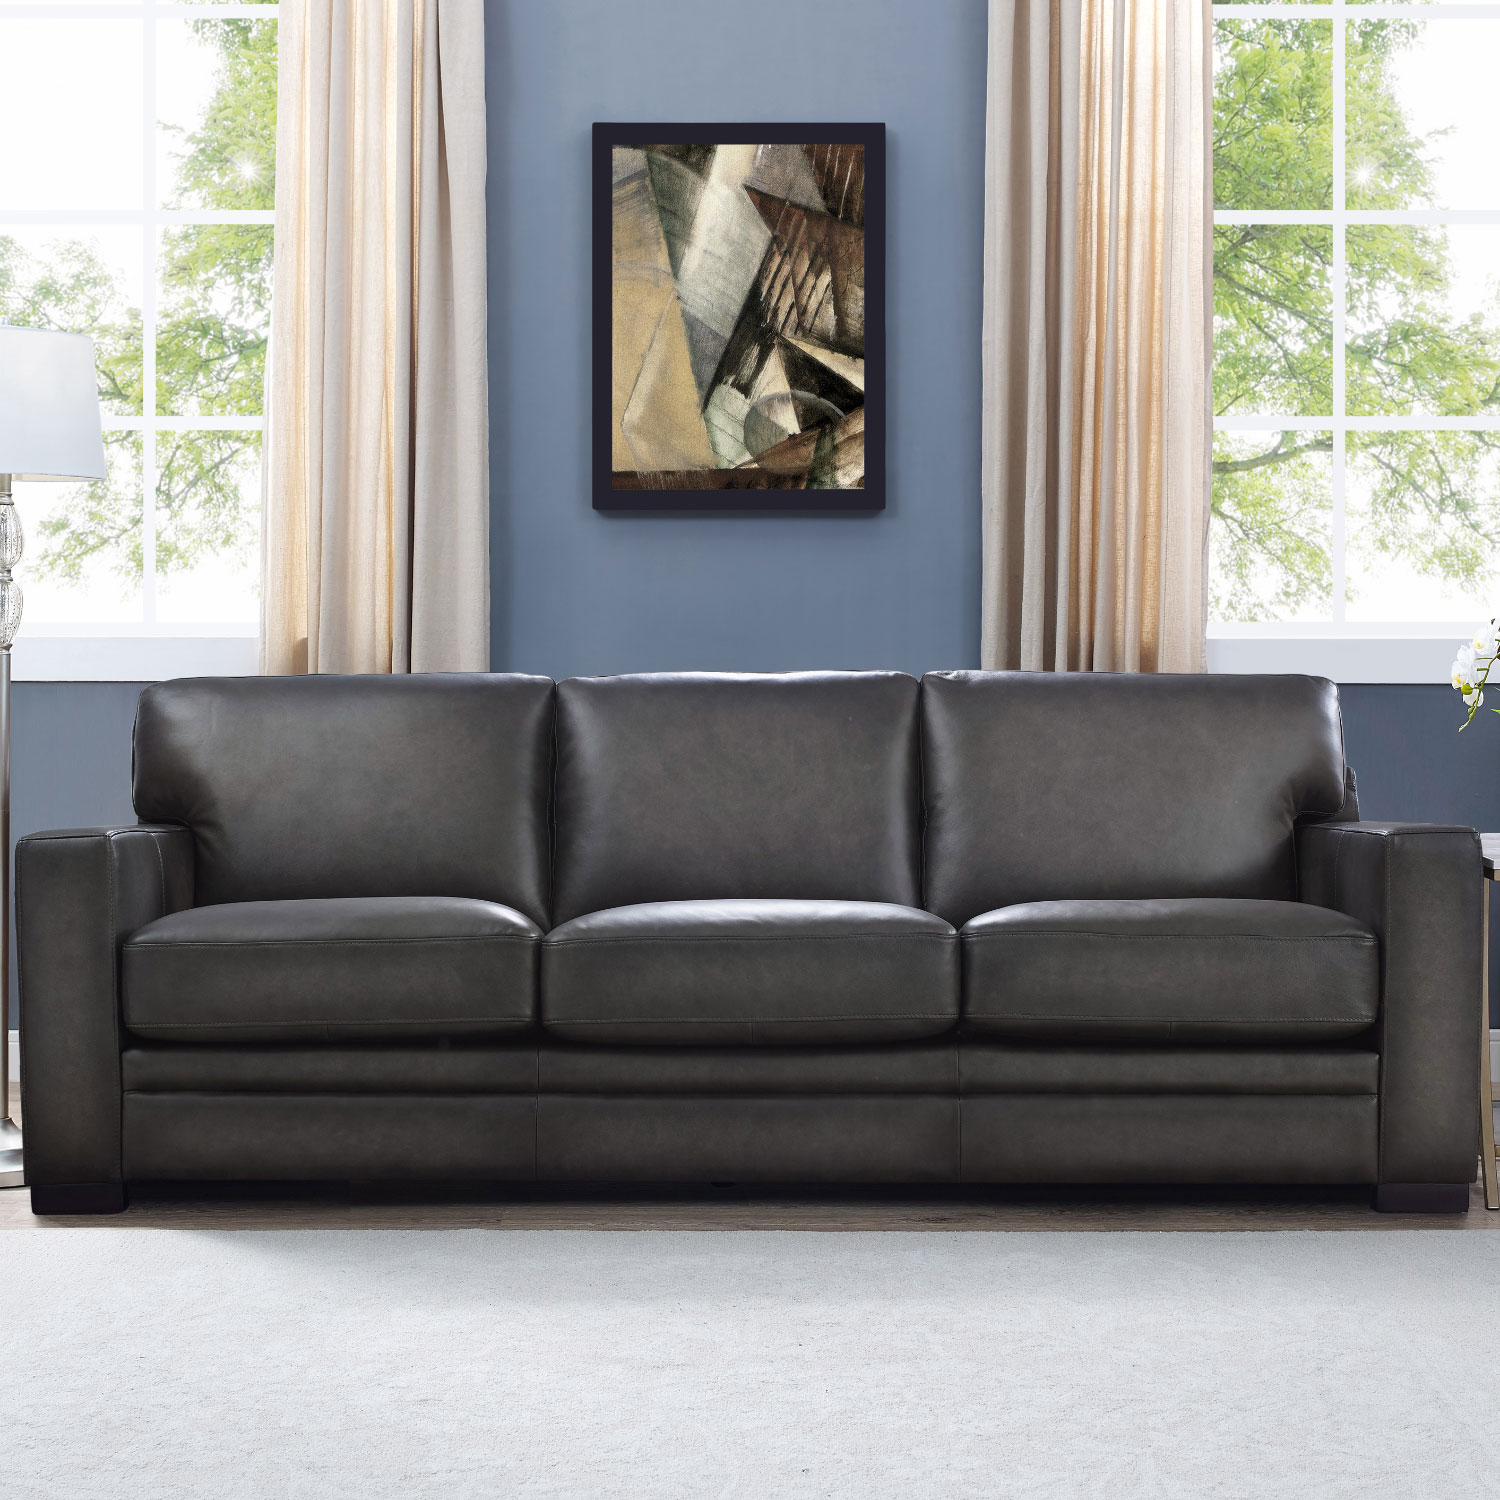 Fantastic Dillon Sofa In Gray Top Grain Leather By Hydeline Leather Caraccident5 Cool Chair Designs And Ideas Caraccident5Info